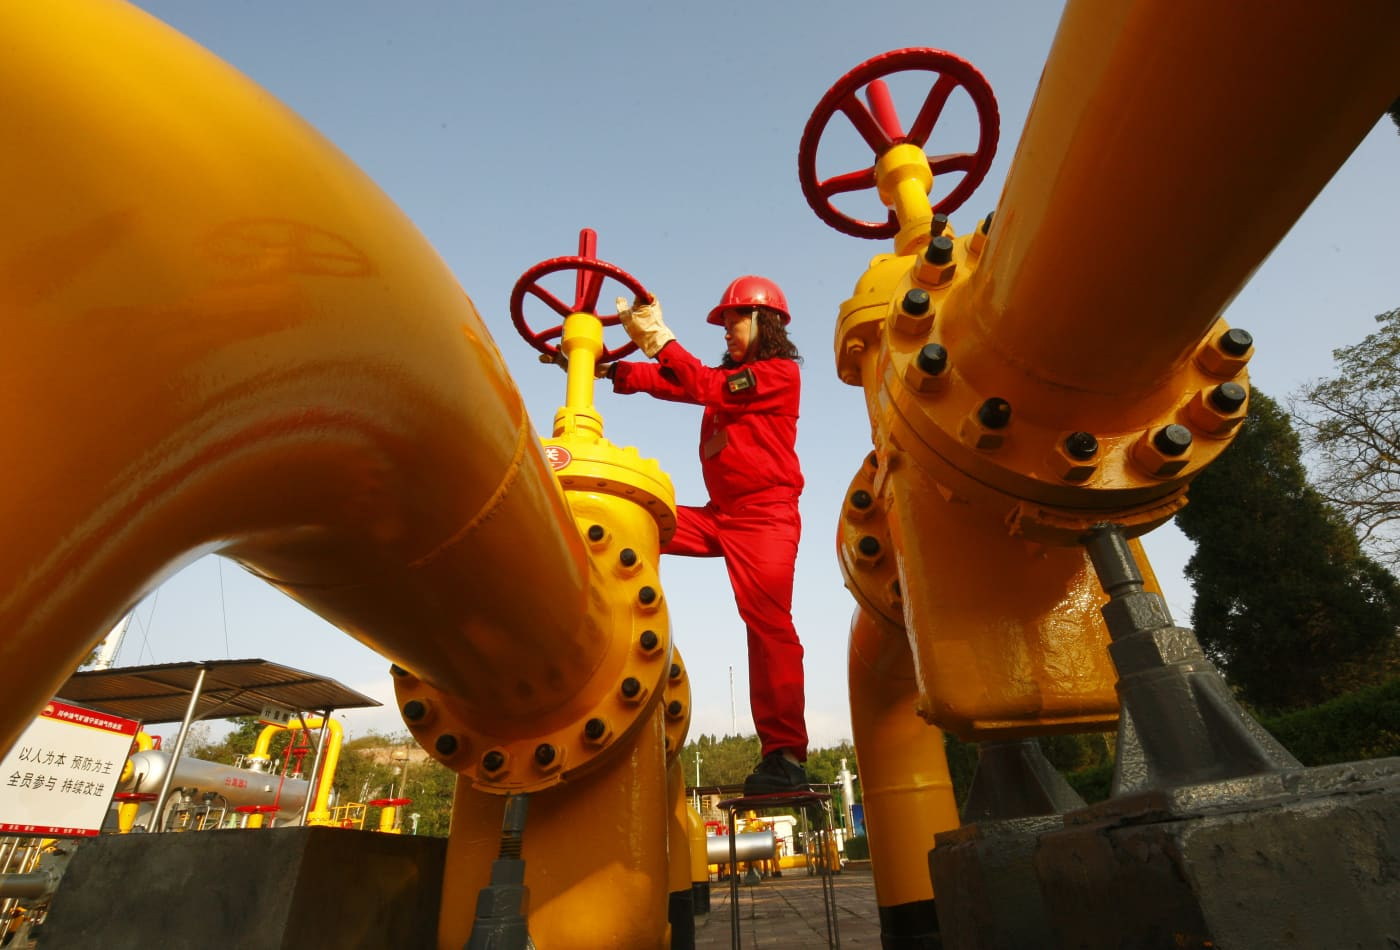 Global oil demand set to see first quarterly decline in over 10 years, IEA says